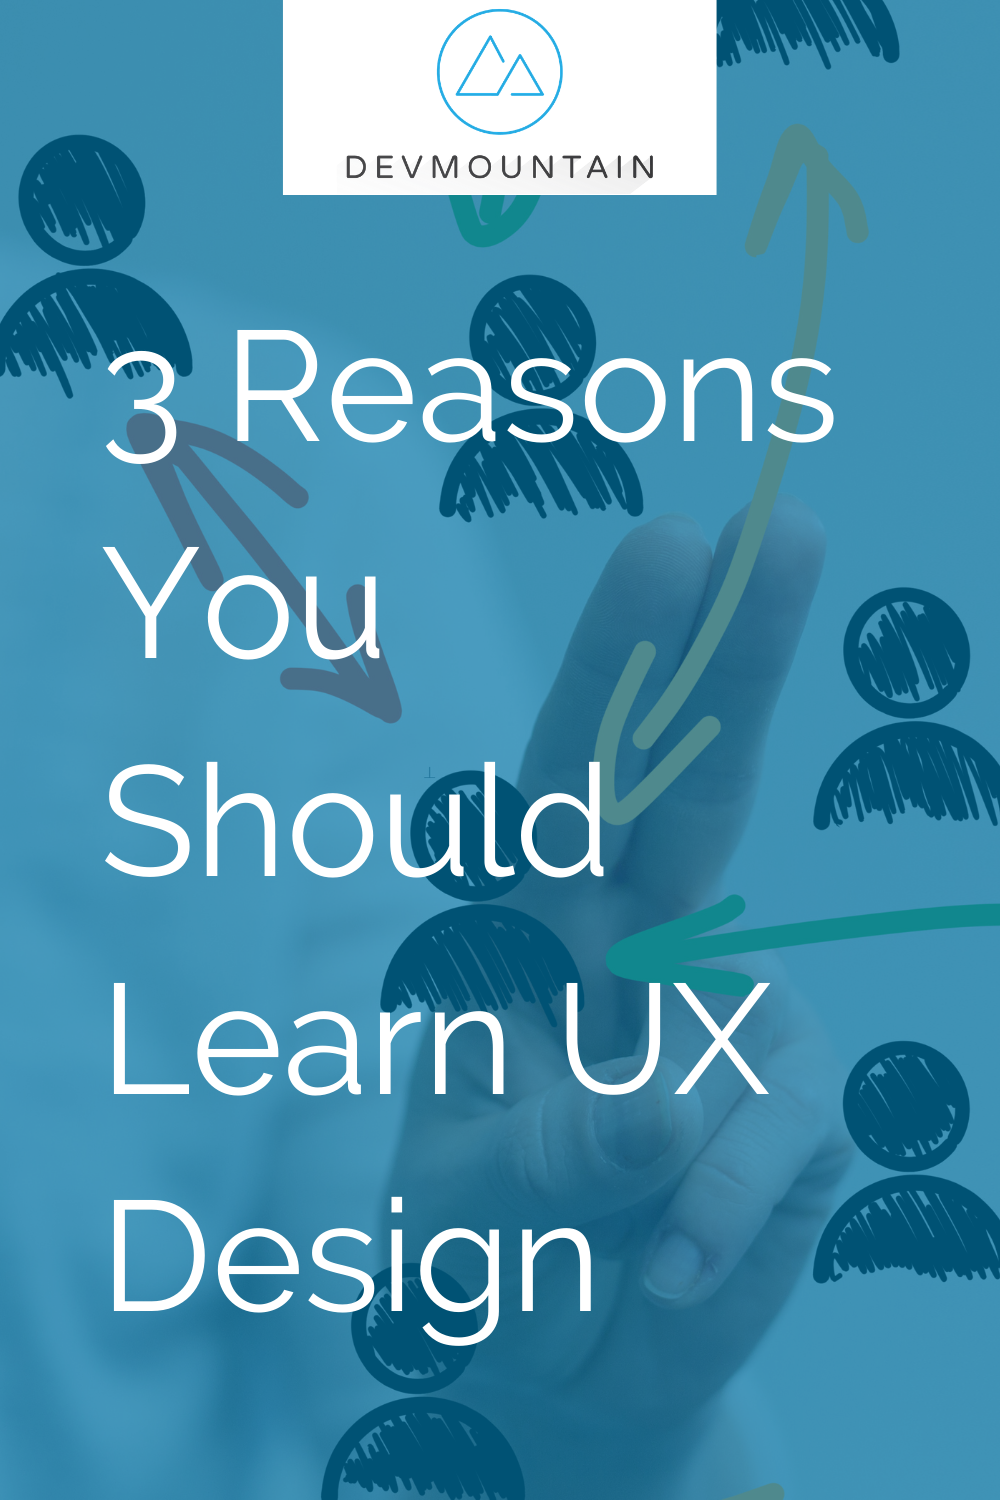 3 Reasons You Should Learn UX Design